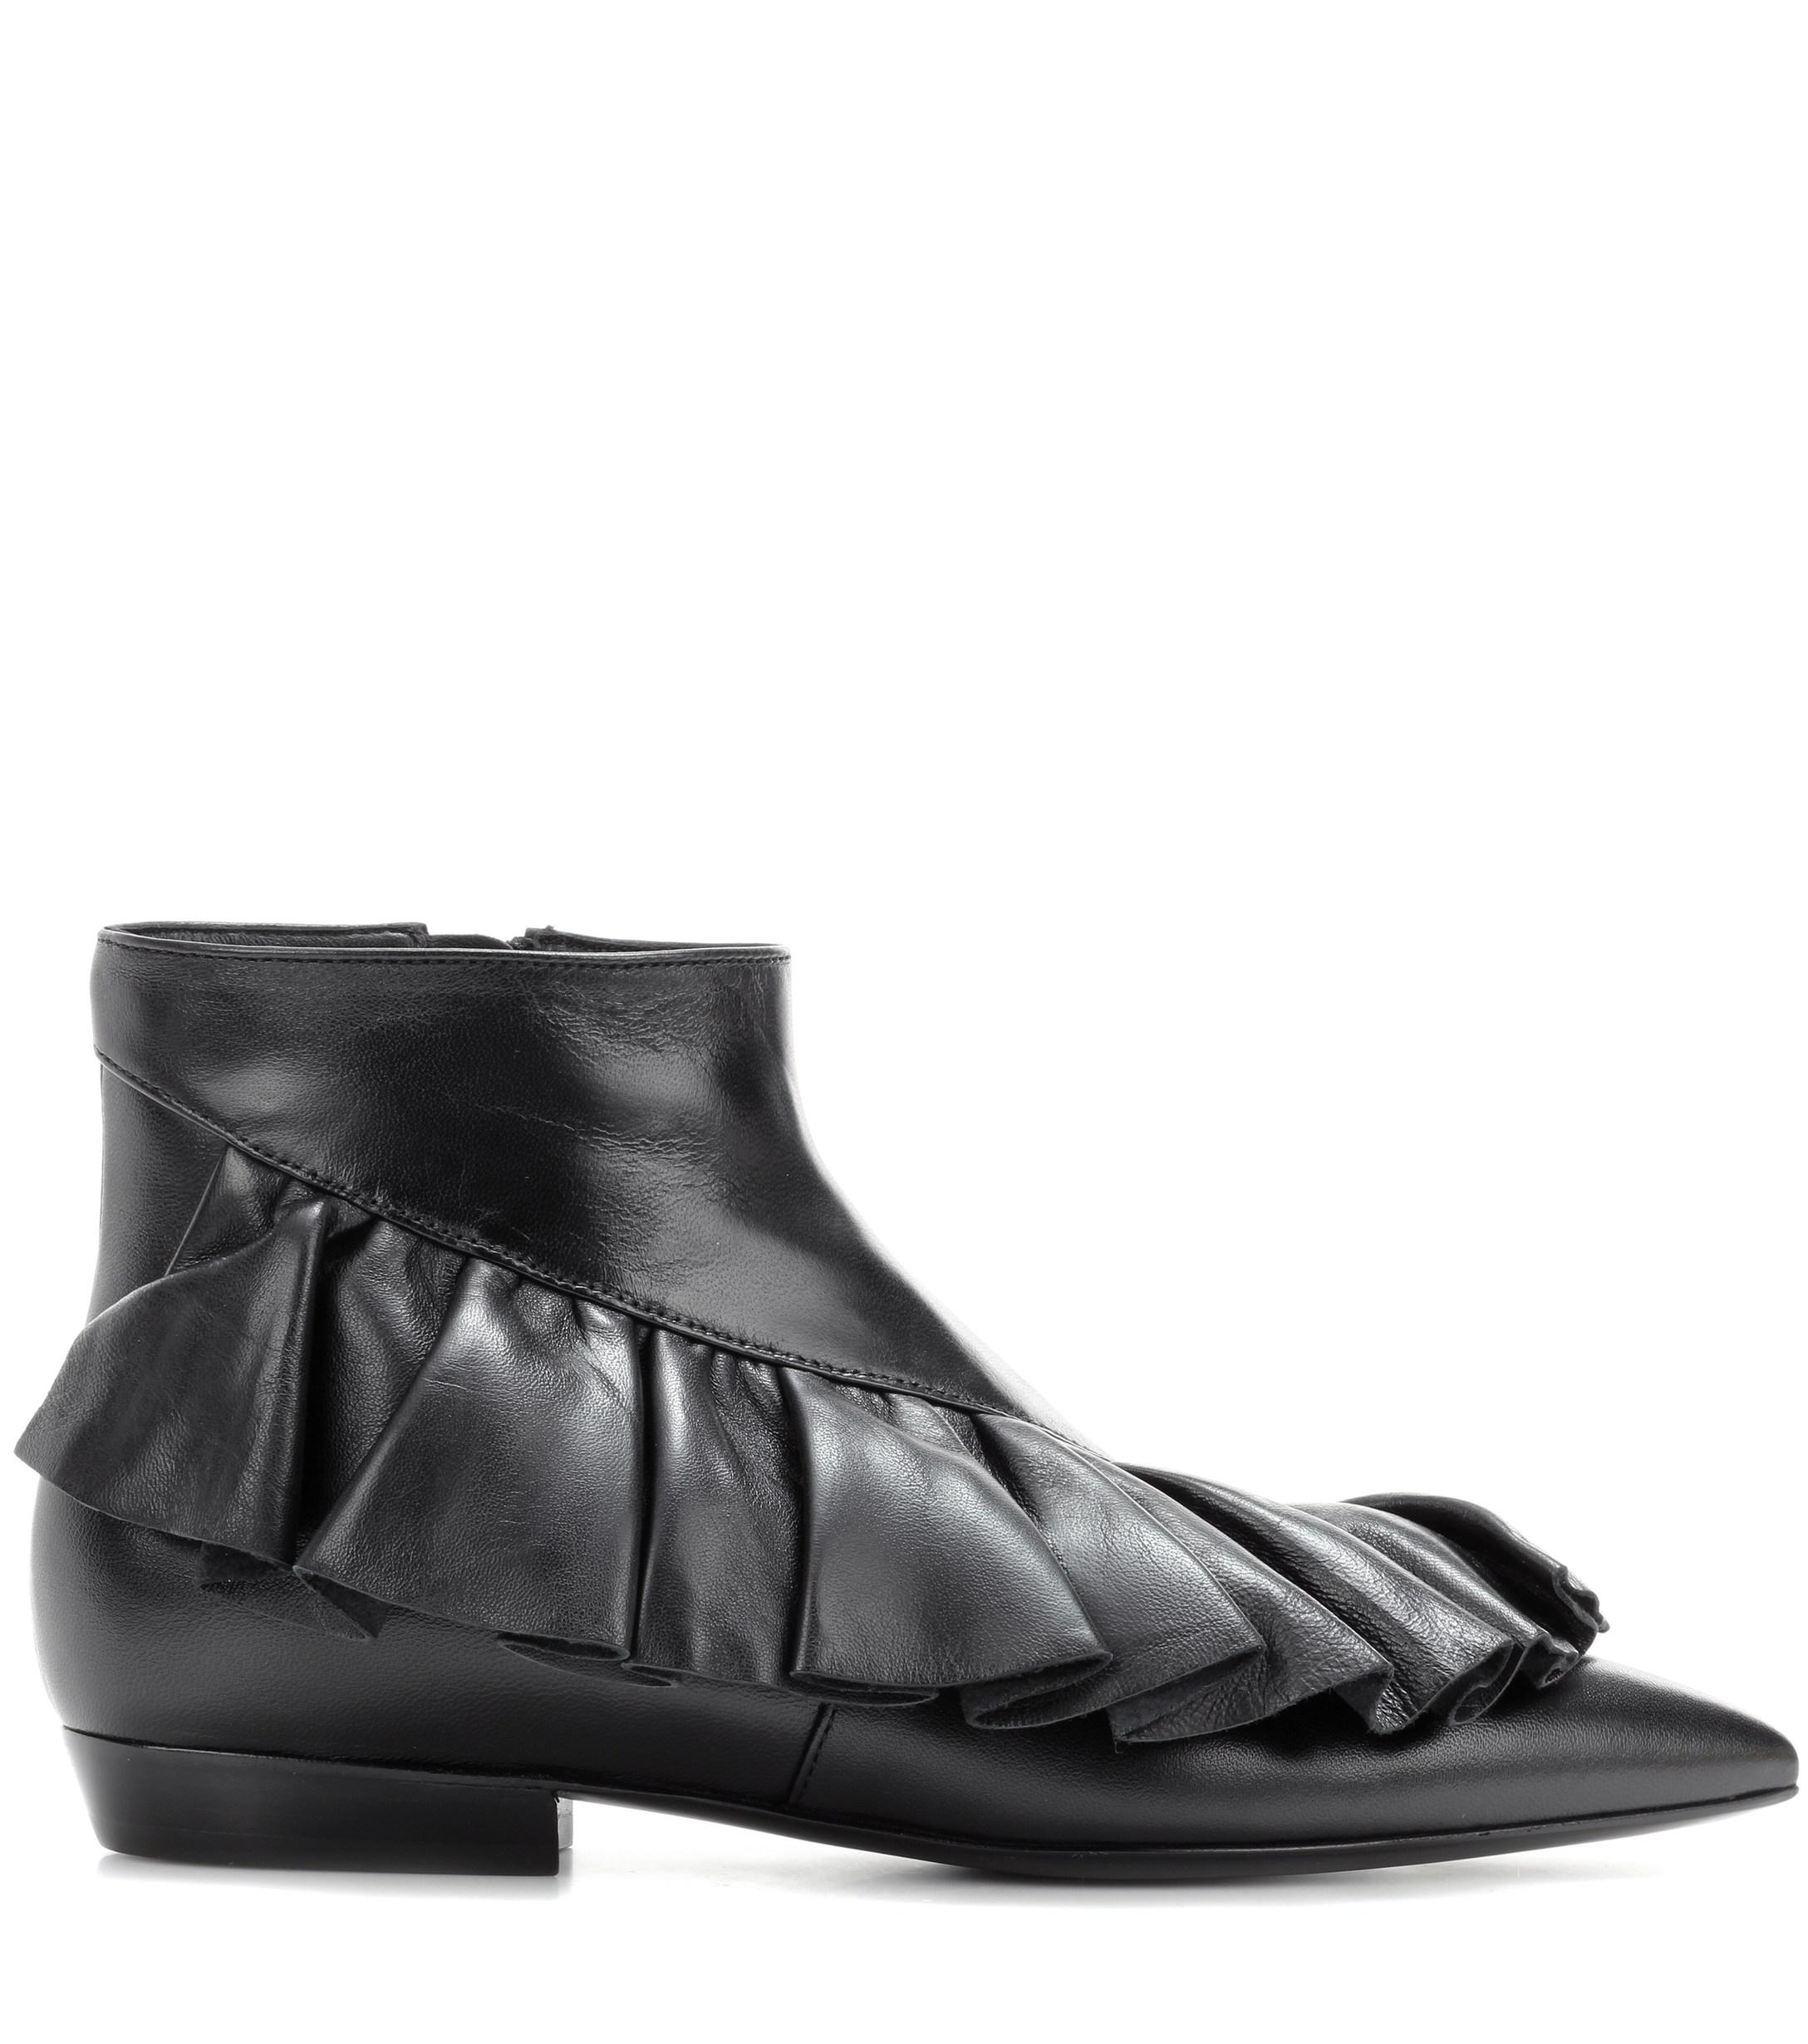 JW Anderson Ruffle Leather Ankle Boots in Black